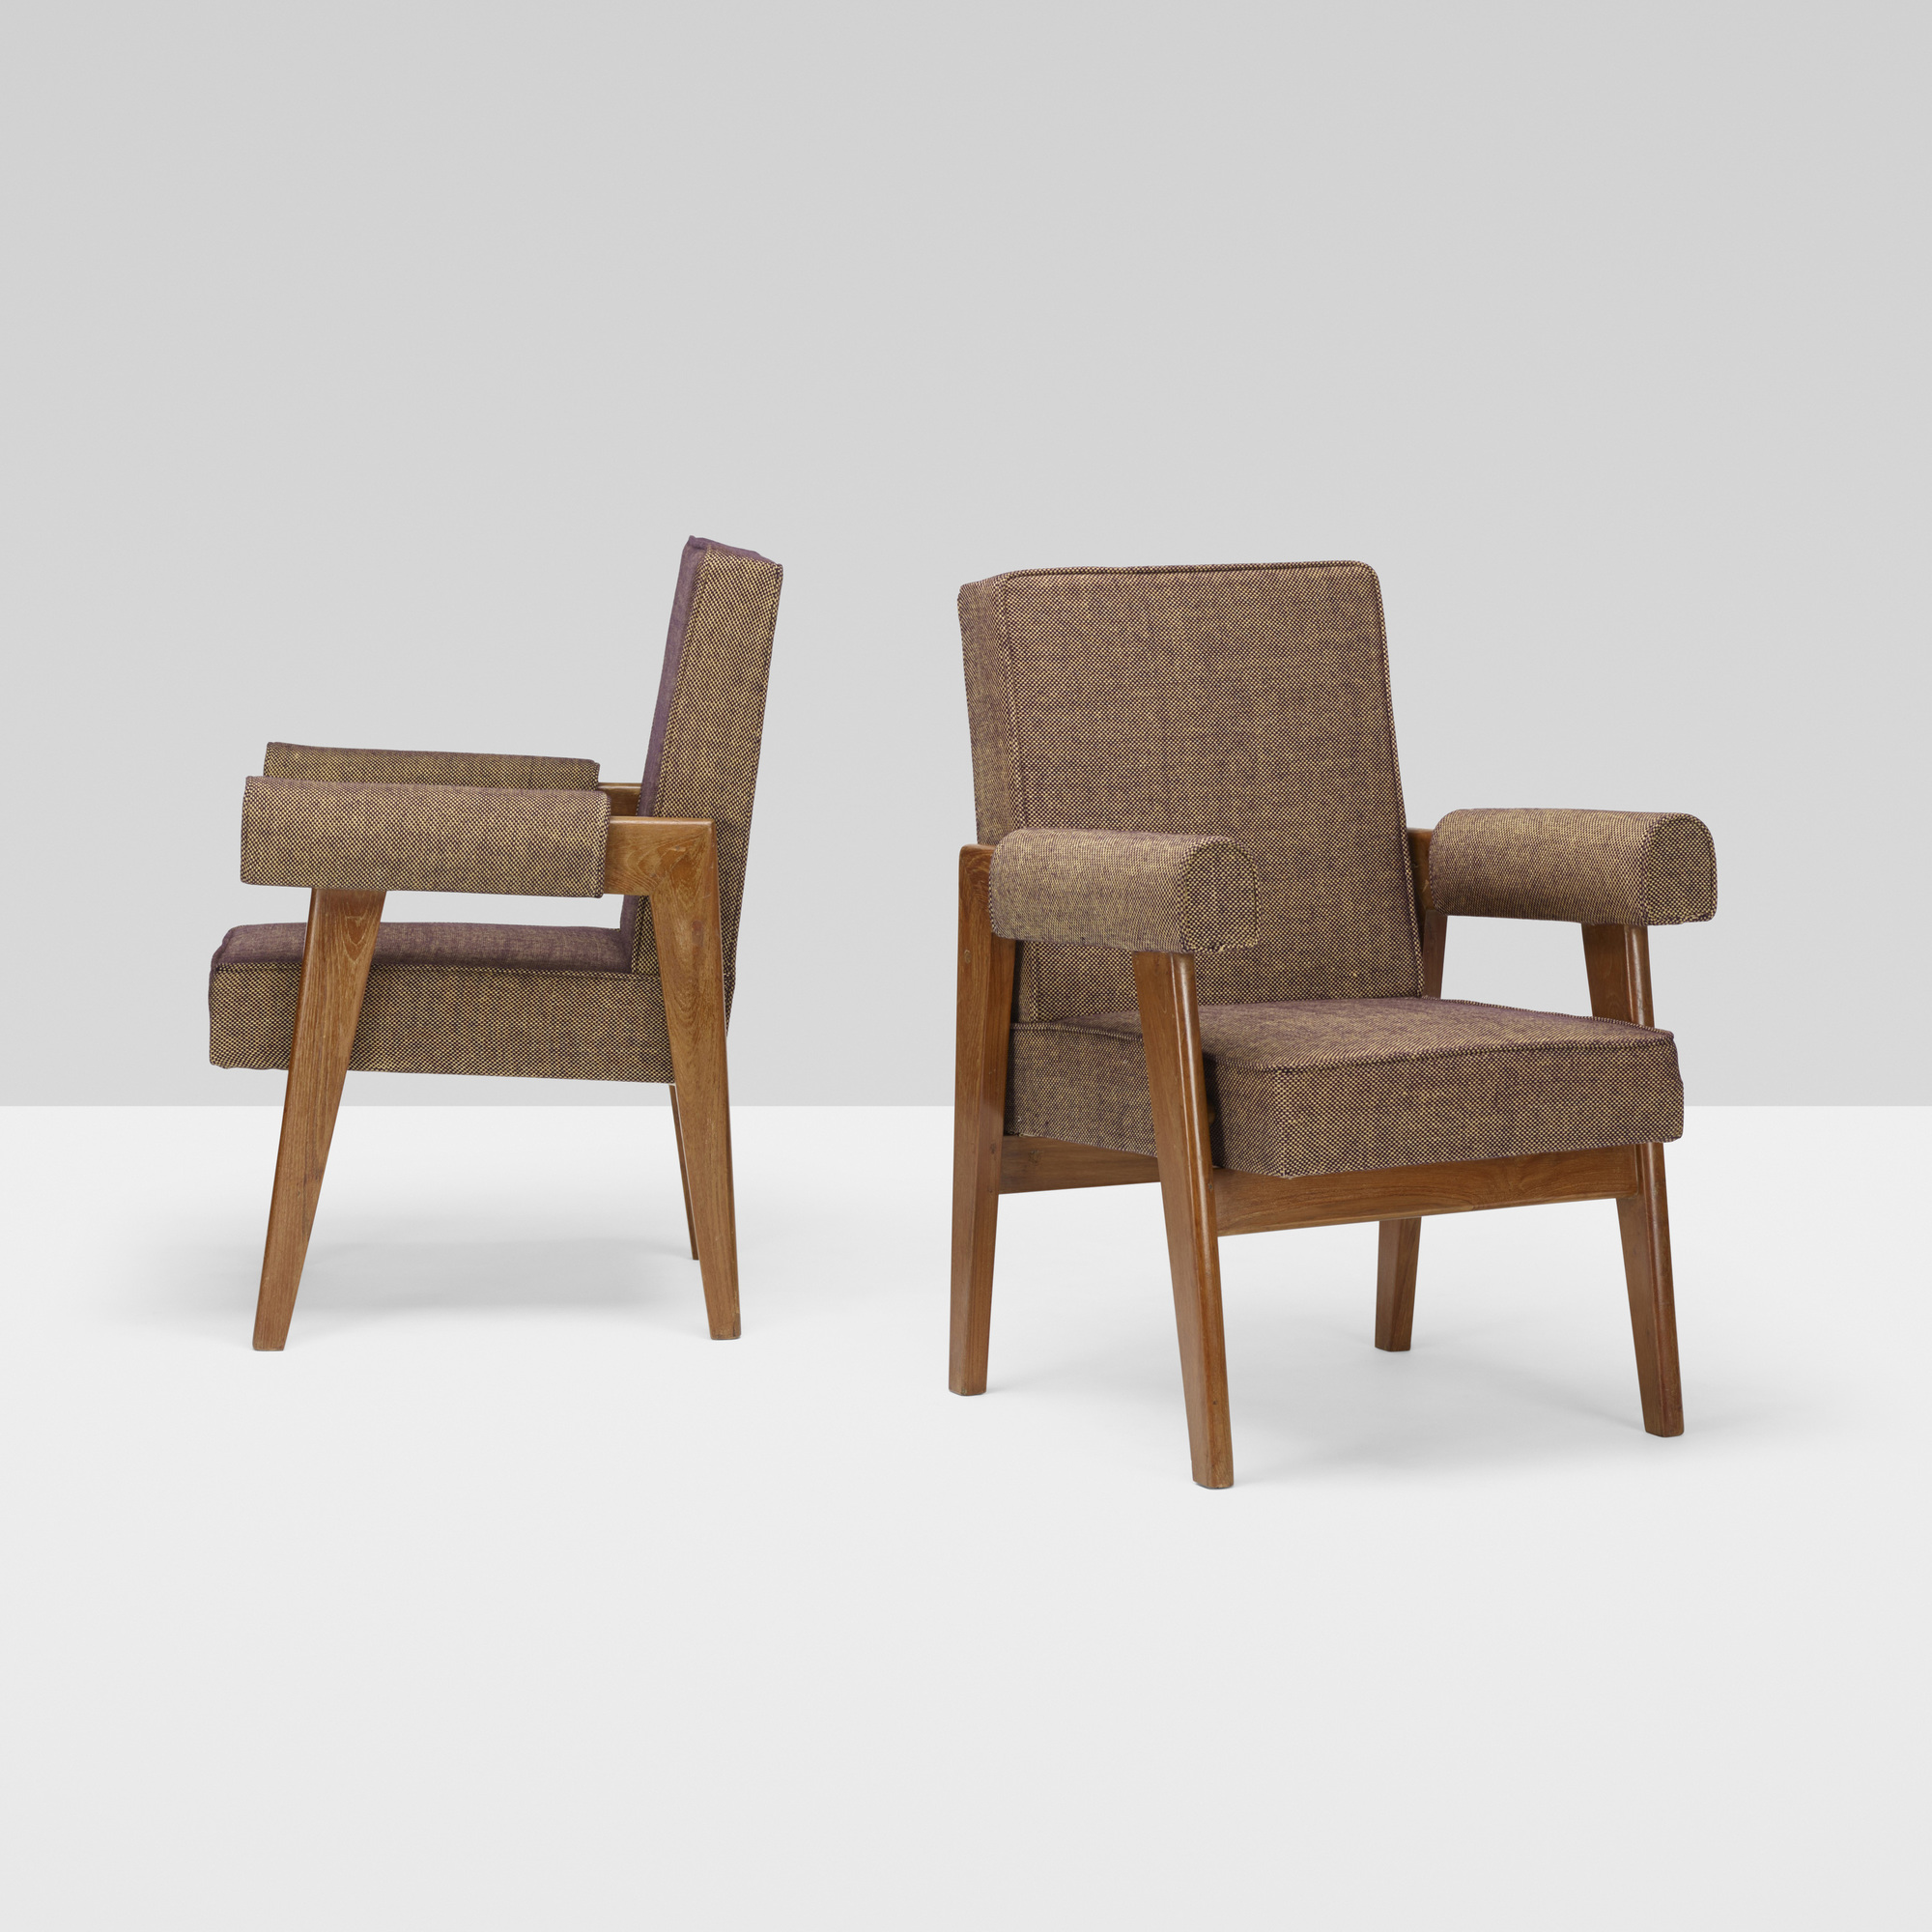 114: Le Corbusier and Pierre Jeanneret / pair of armchairs from the High Court, Chandigarh (3 of 4)